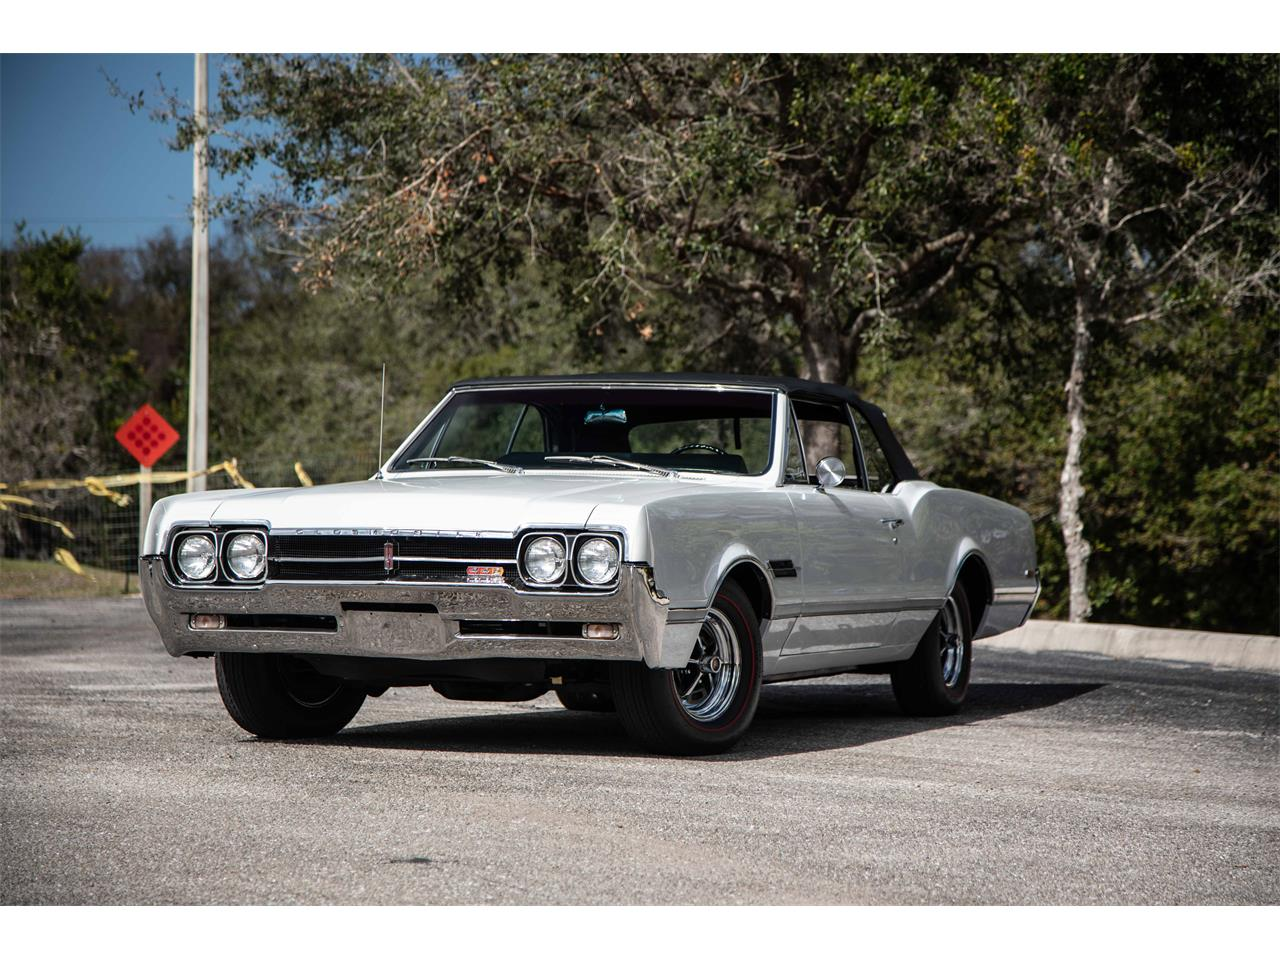 Large Picture of 1966 Oldsmobile 442 located in Florida - $59,900.00 Offered by Exquisite Auto - PIES